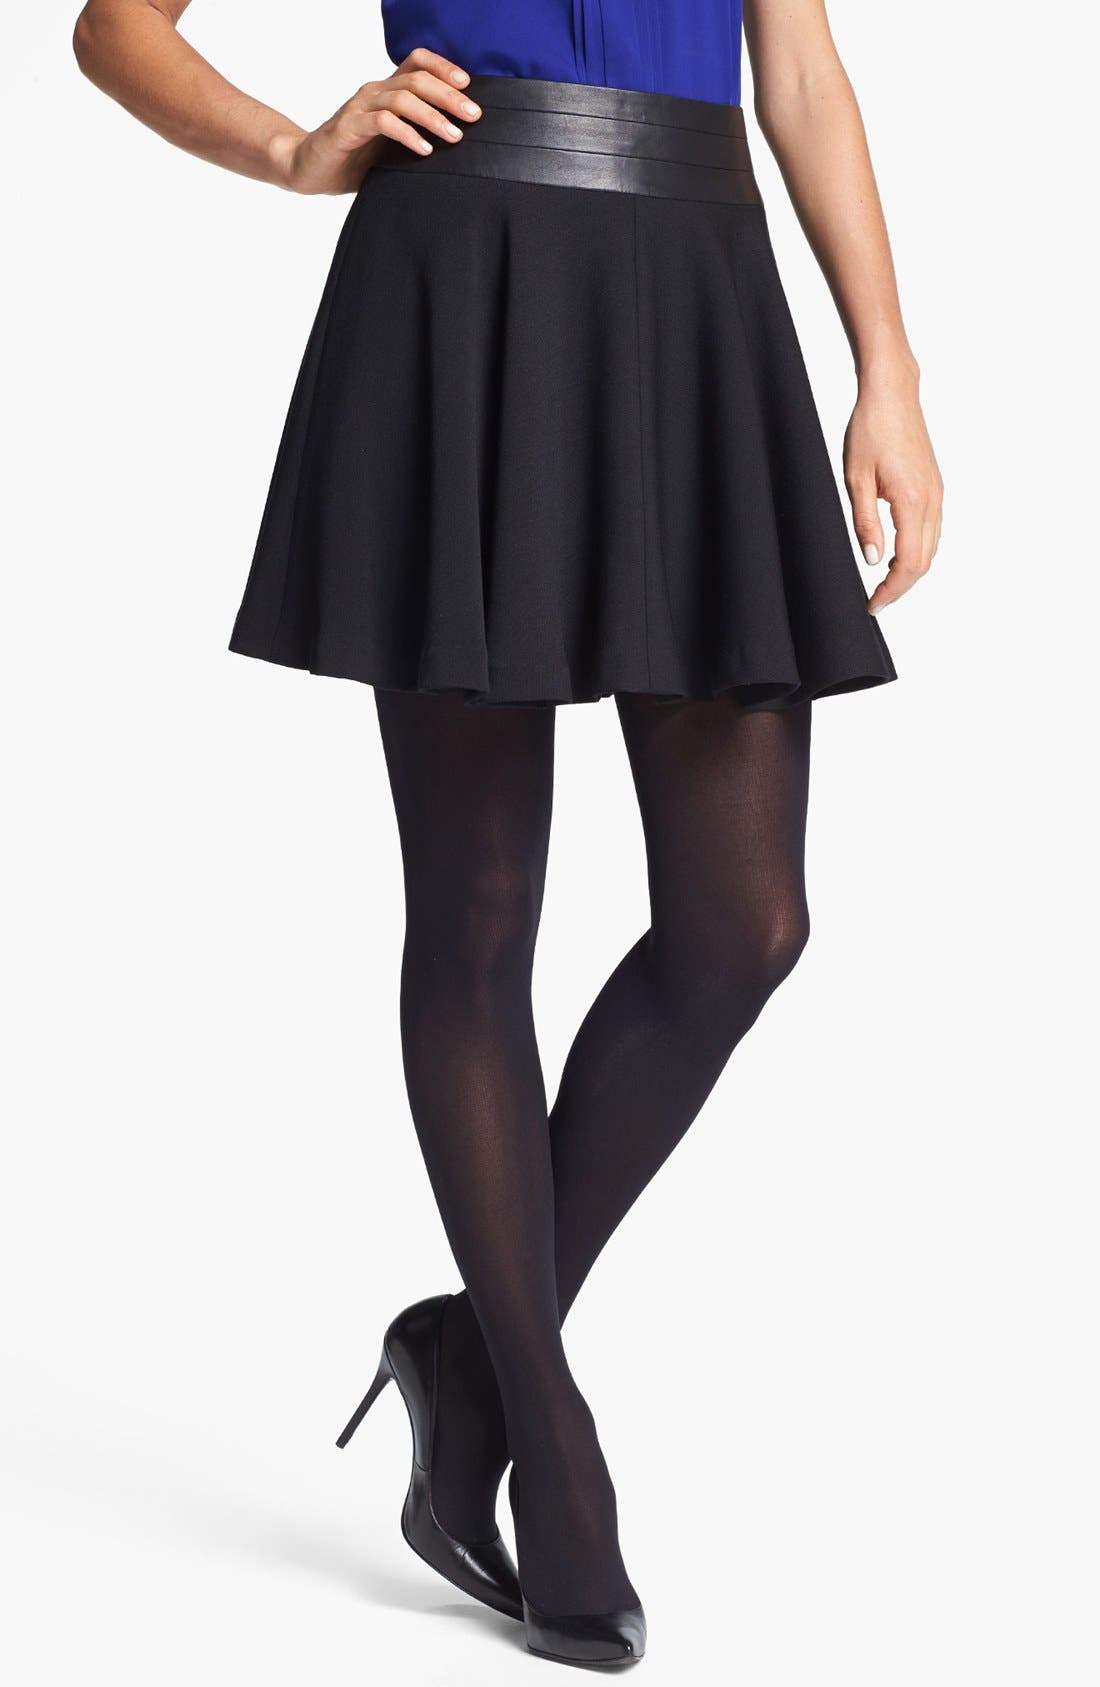 Alternate Image 1 Selected - Milly 'Delphine' Circle Skirt